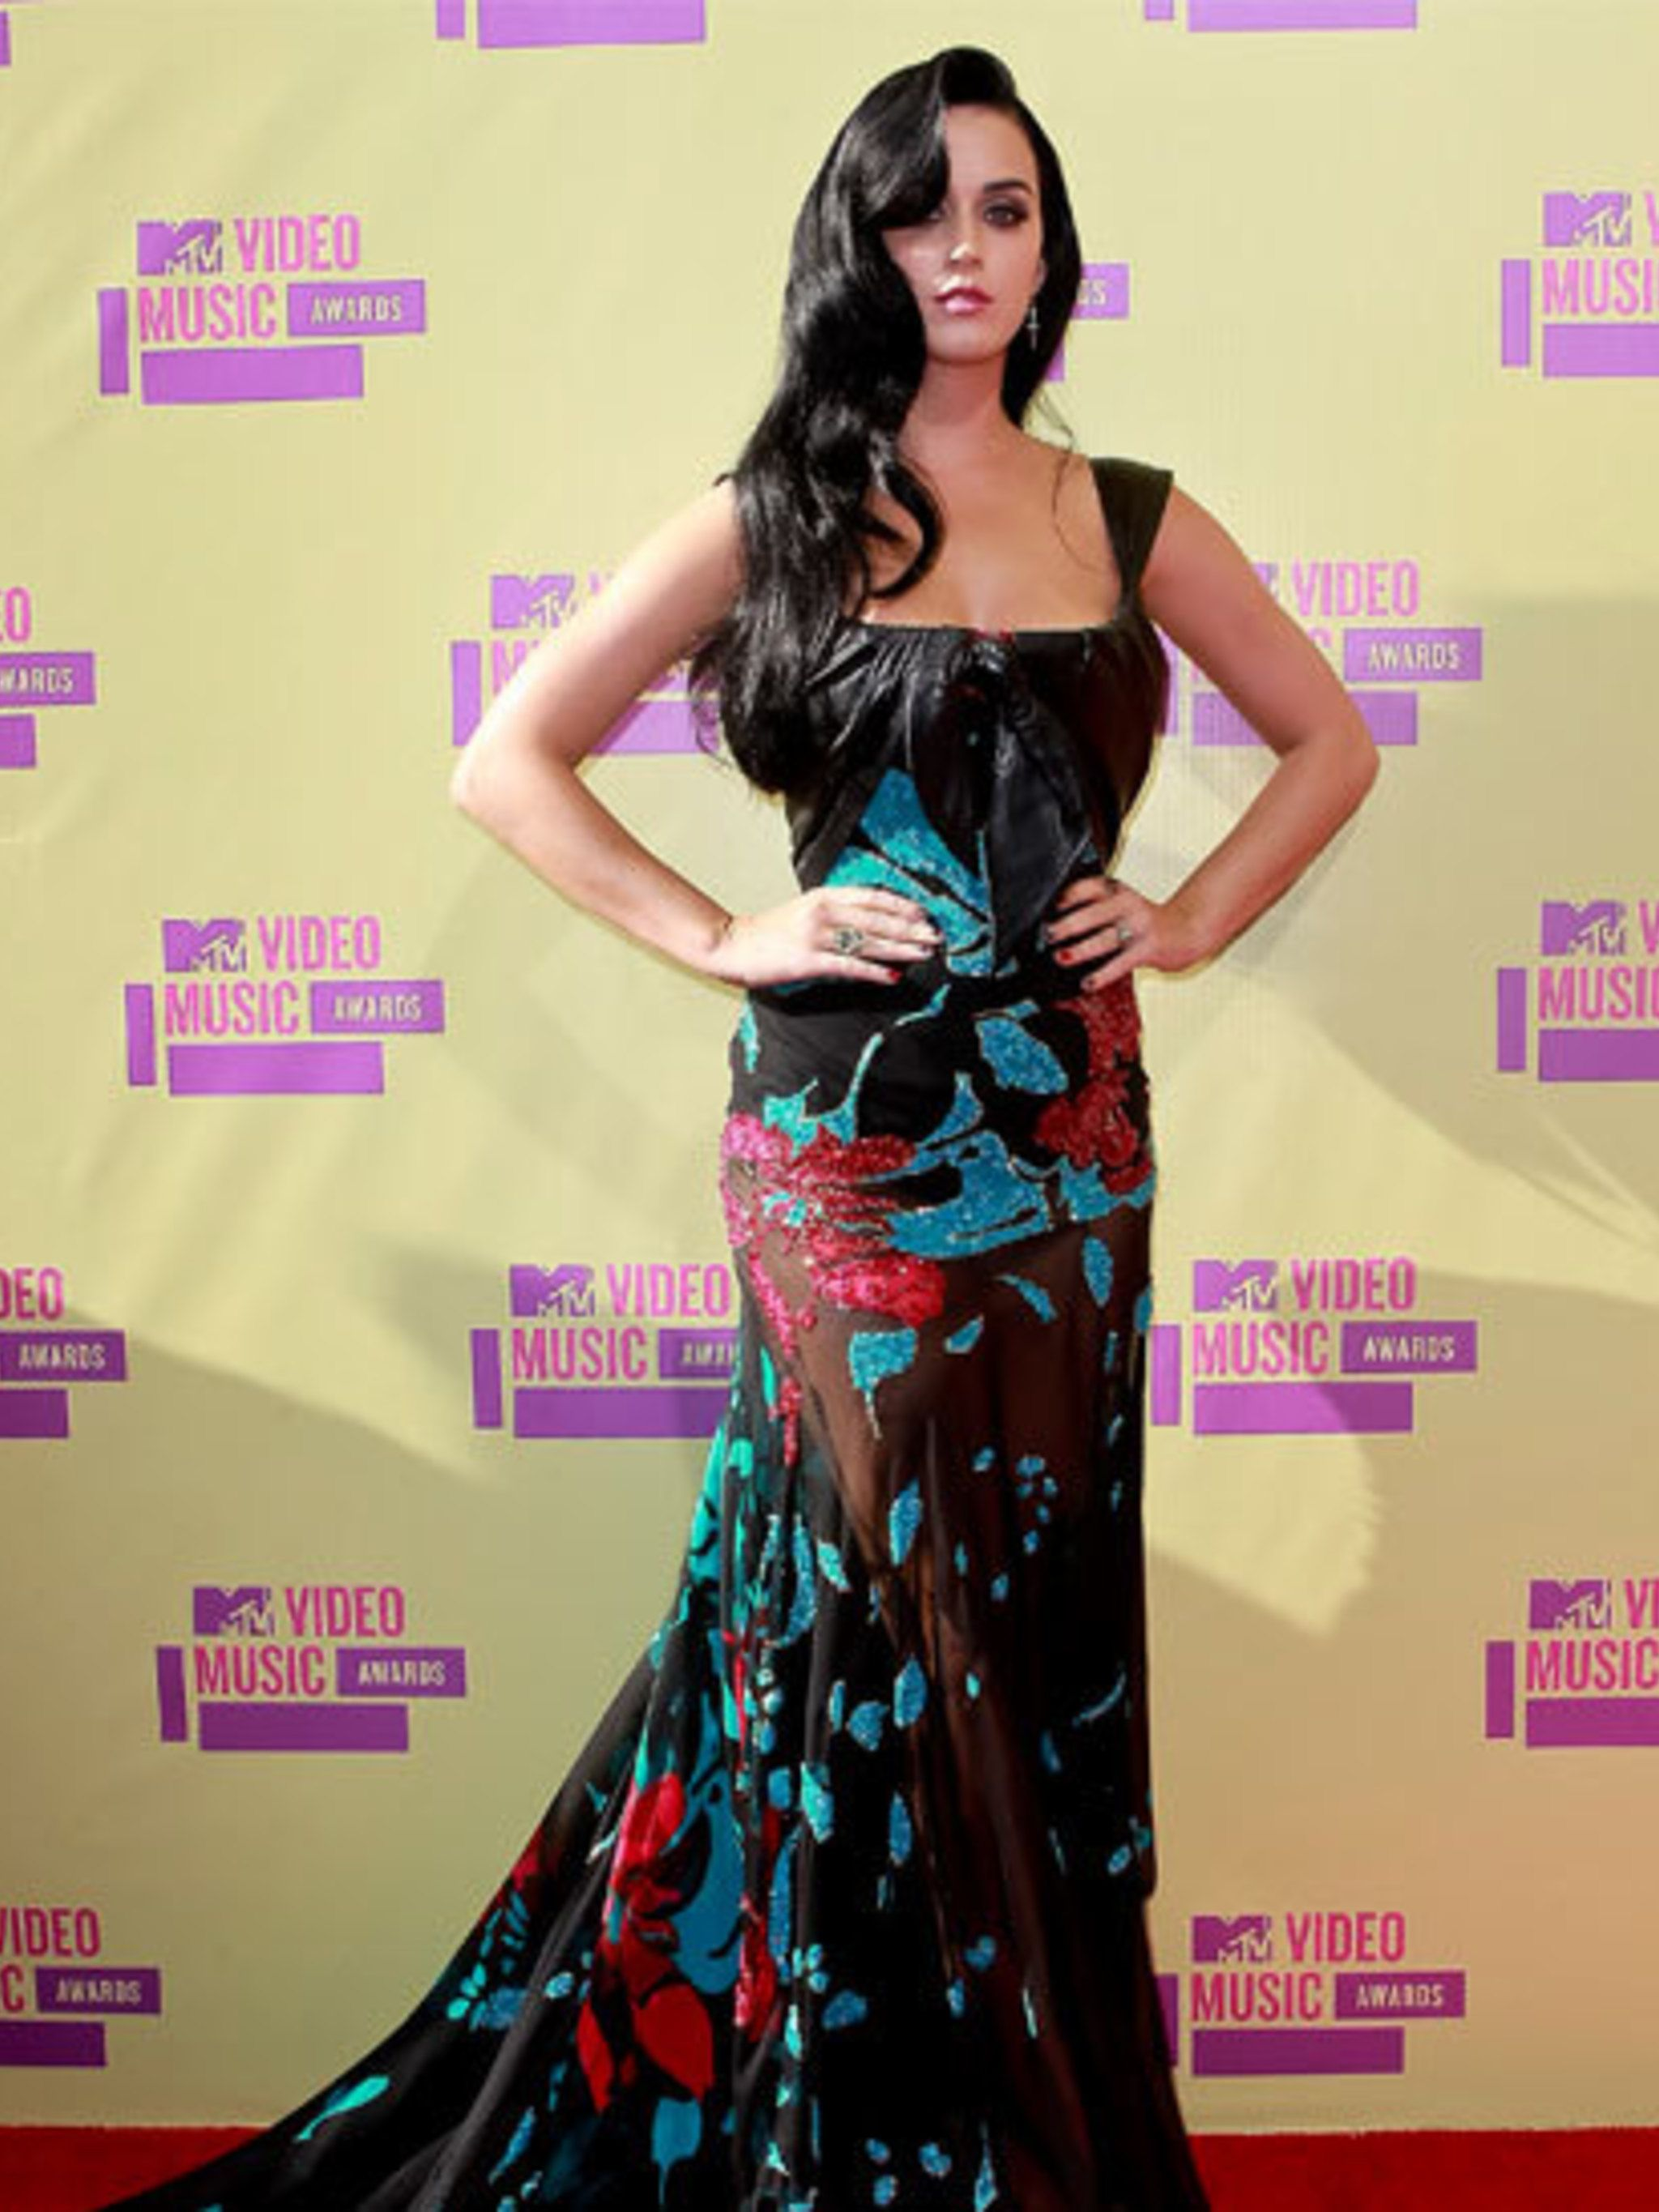 """<p><a href=""""http://www.elleuk.com/star-style/celebrity-style-files/katy-perry"""">Katy Perry</a> in <a href=""""http://www.elleuk.com/catwalk/designer-a-z/elie-saab/autumn-winter-2012"""">Elie Saab</a> at the MTV VMA Awards Los Angeles</p>"""